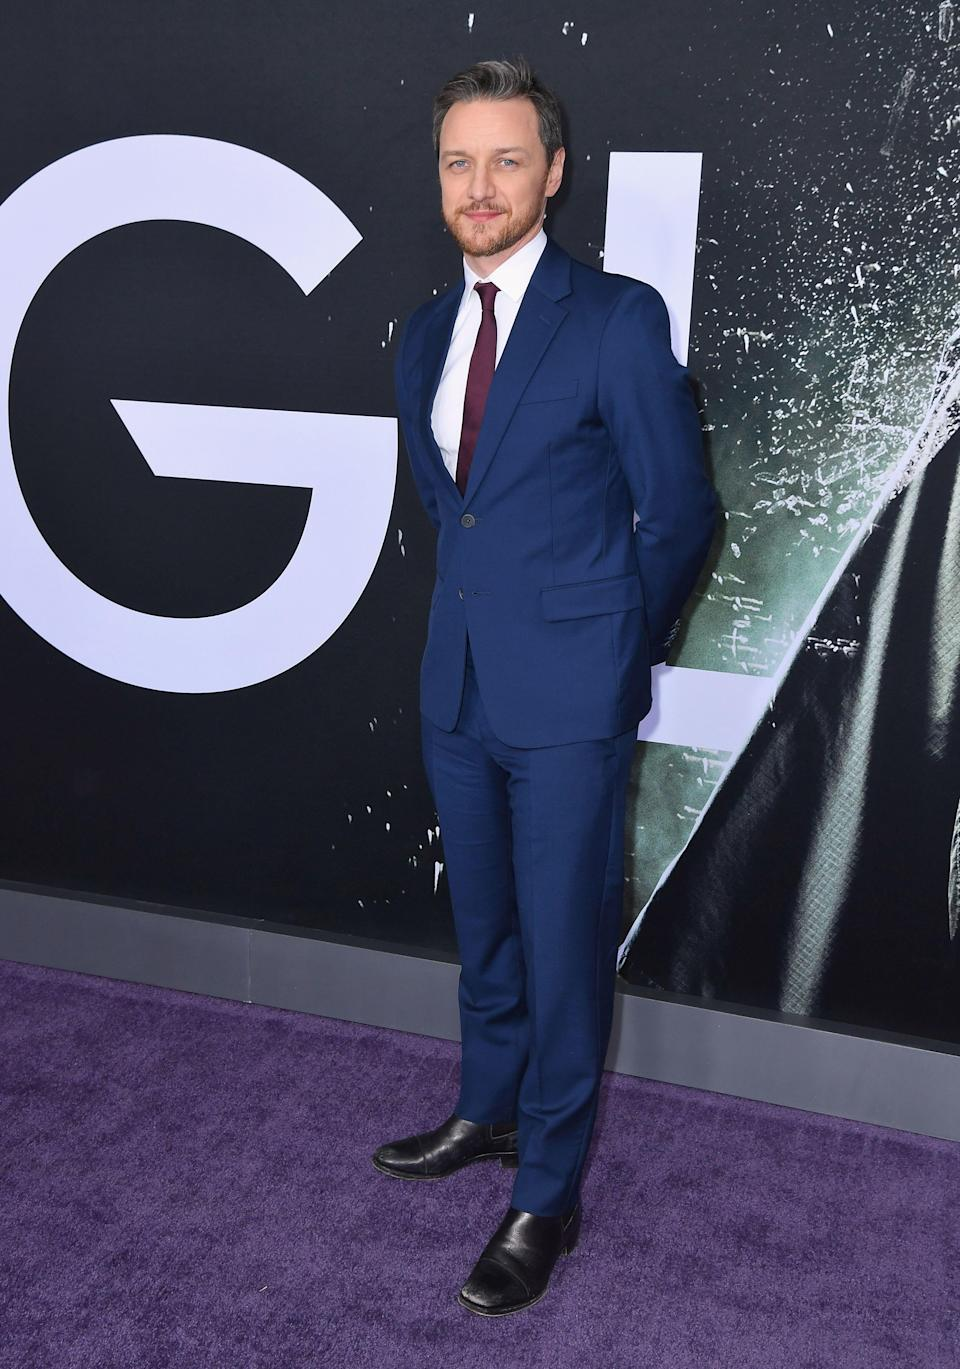 <p>James McAvoy has pulled out all the sartorial stops for his 'Glass' red carpet stint. For the film's New York premiere on January 15, the actor dressed sharp in a navy suit and burgundy-hued tie. <em>[Photo: Getty]</em> </p>